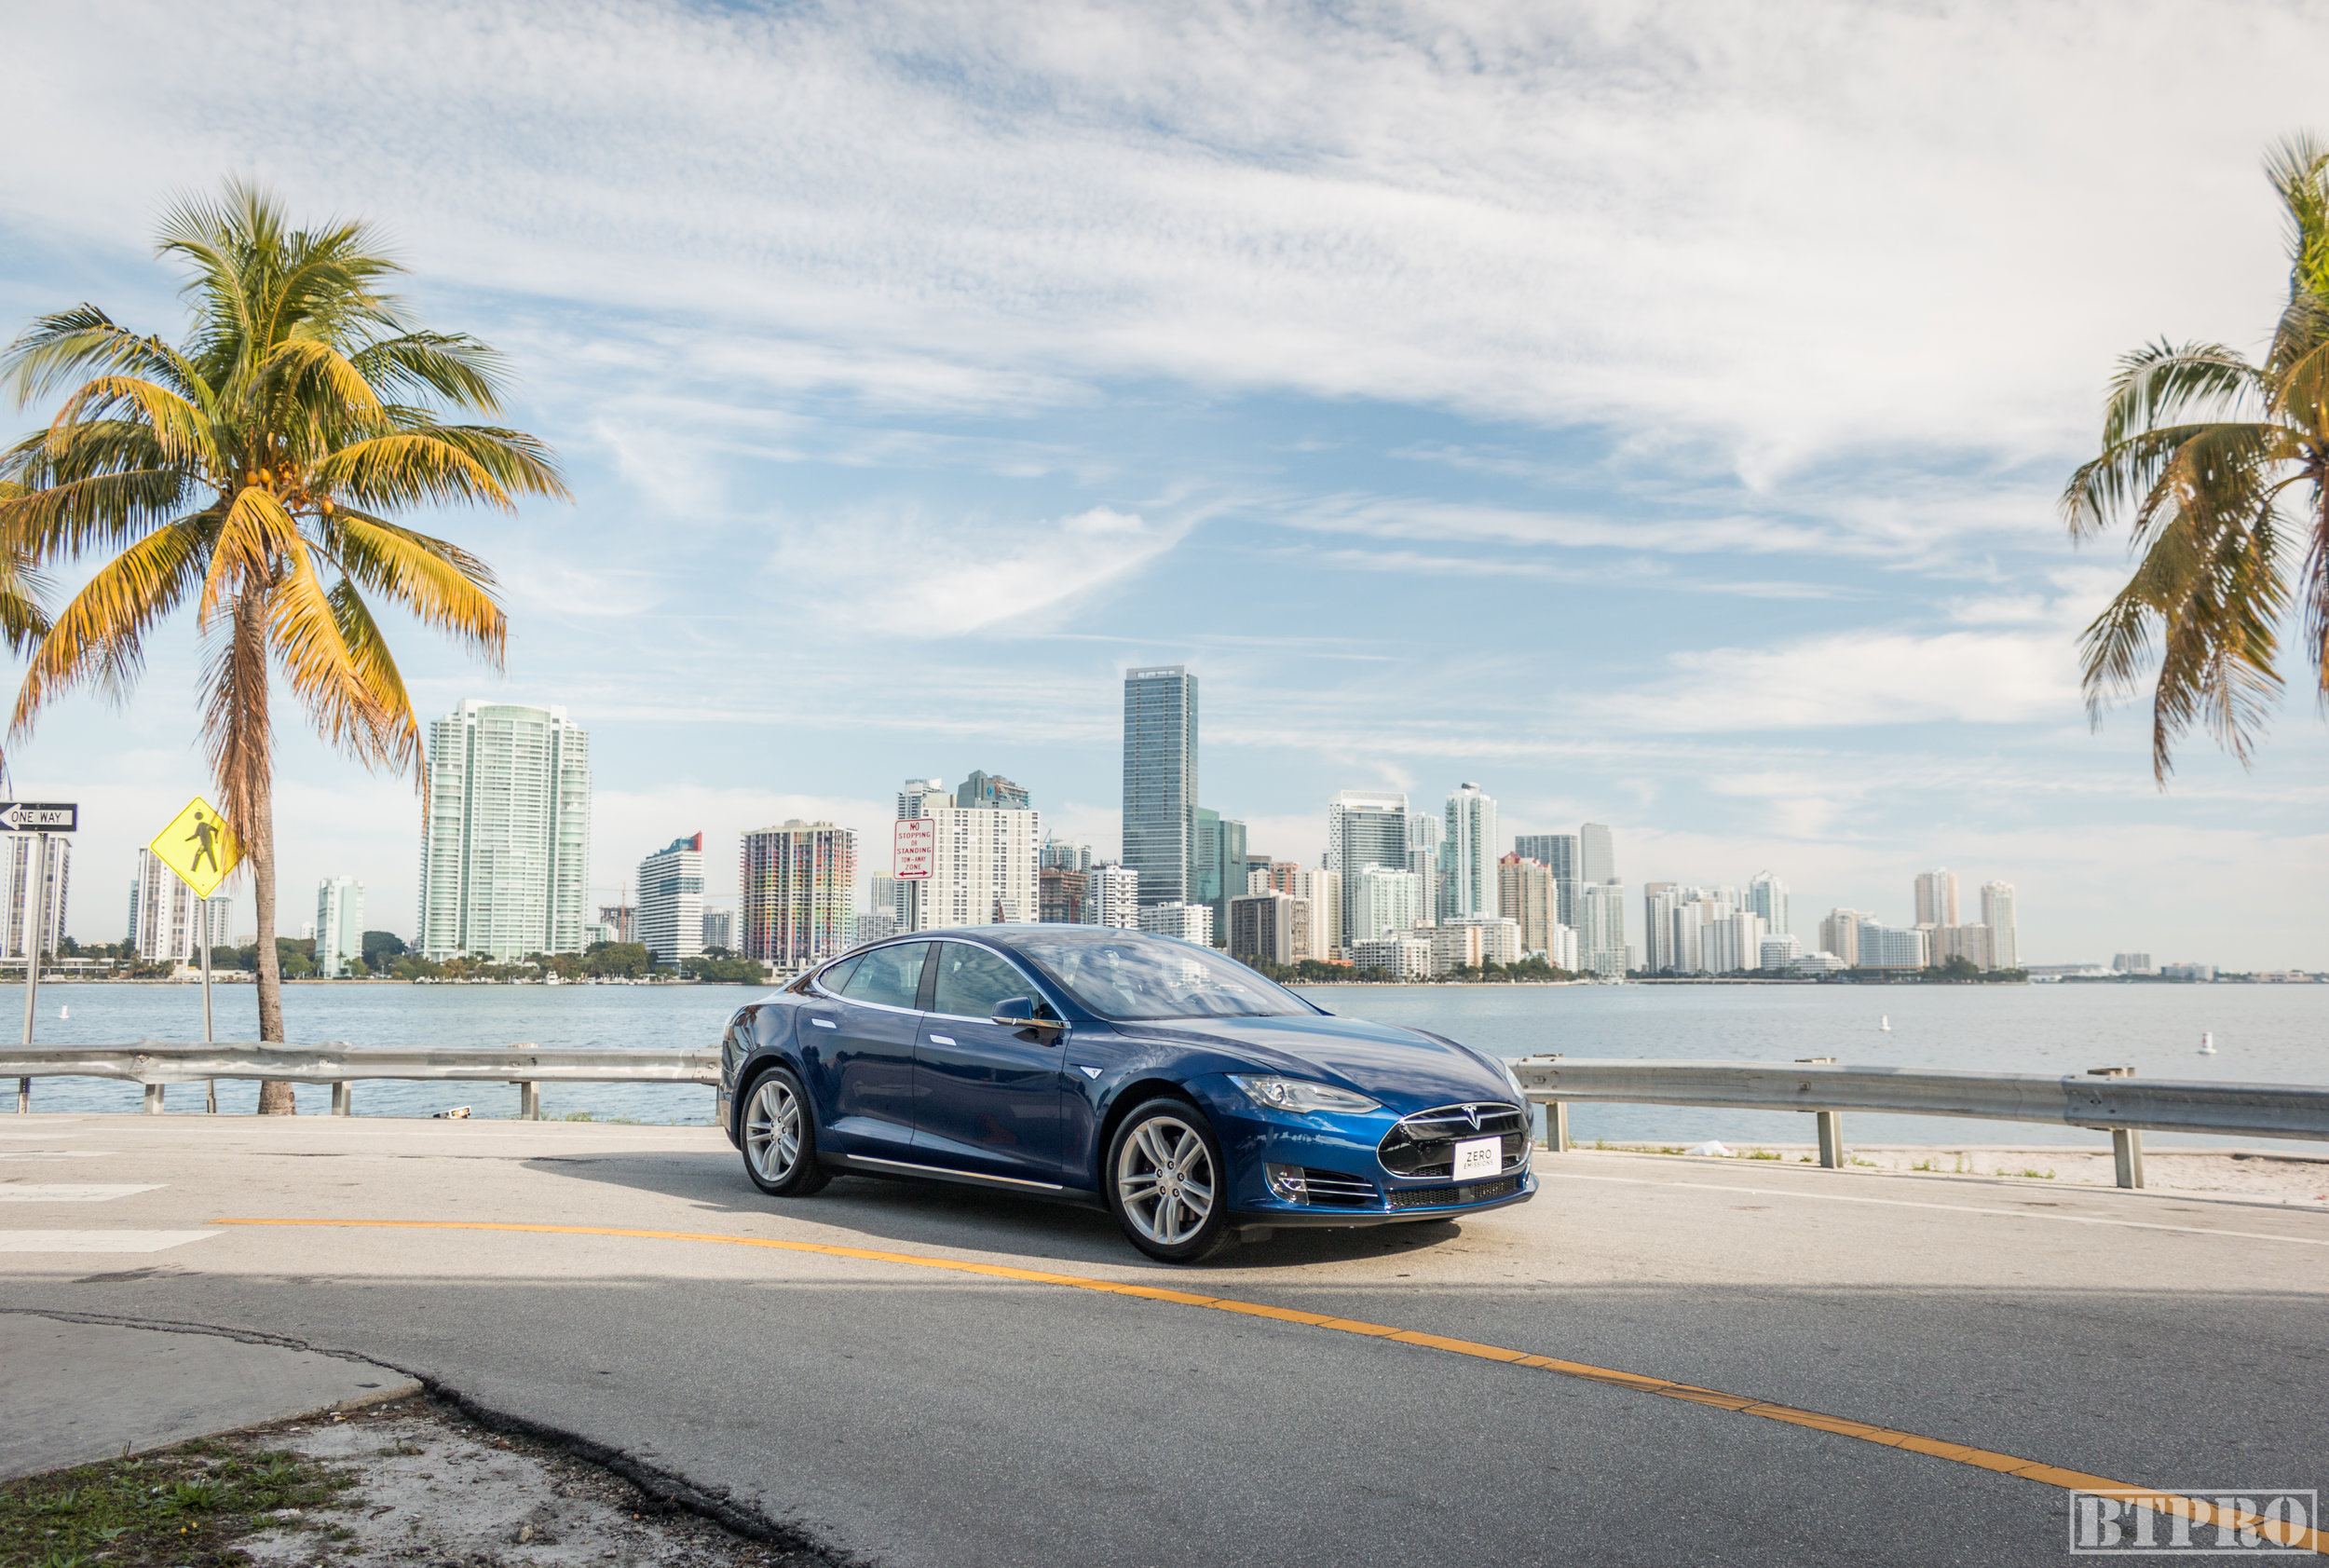 tesla, tesla model s, models s, electric cars, cars, auto , car photo, car photography, luxury cars, commercial photography